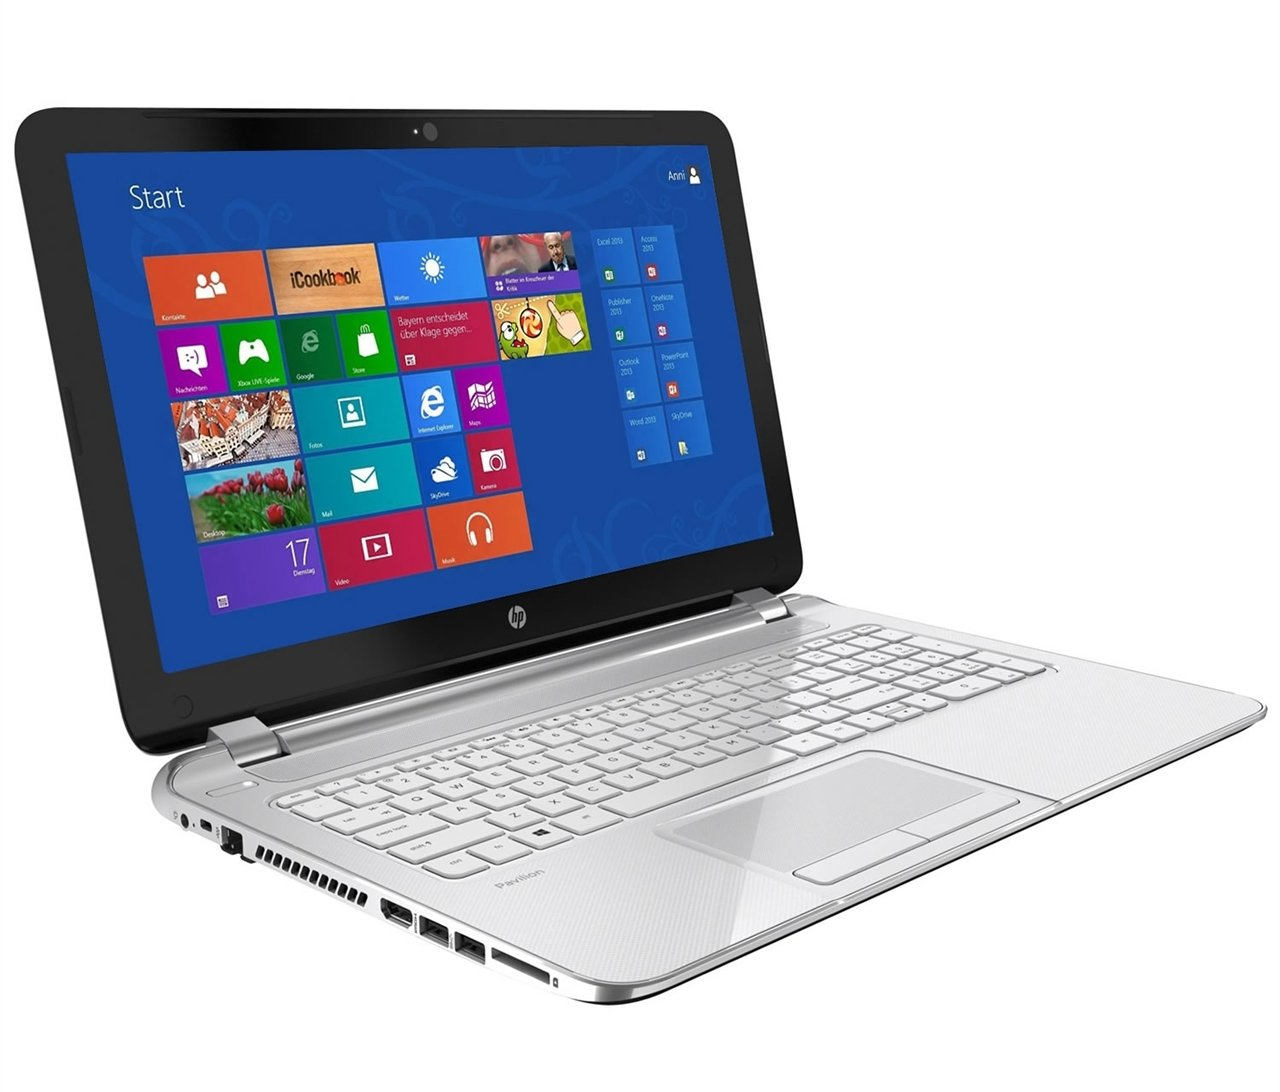 HP Pavilion x360 – Is it Good to Buy for Programming Purpose?